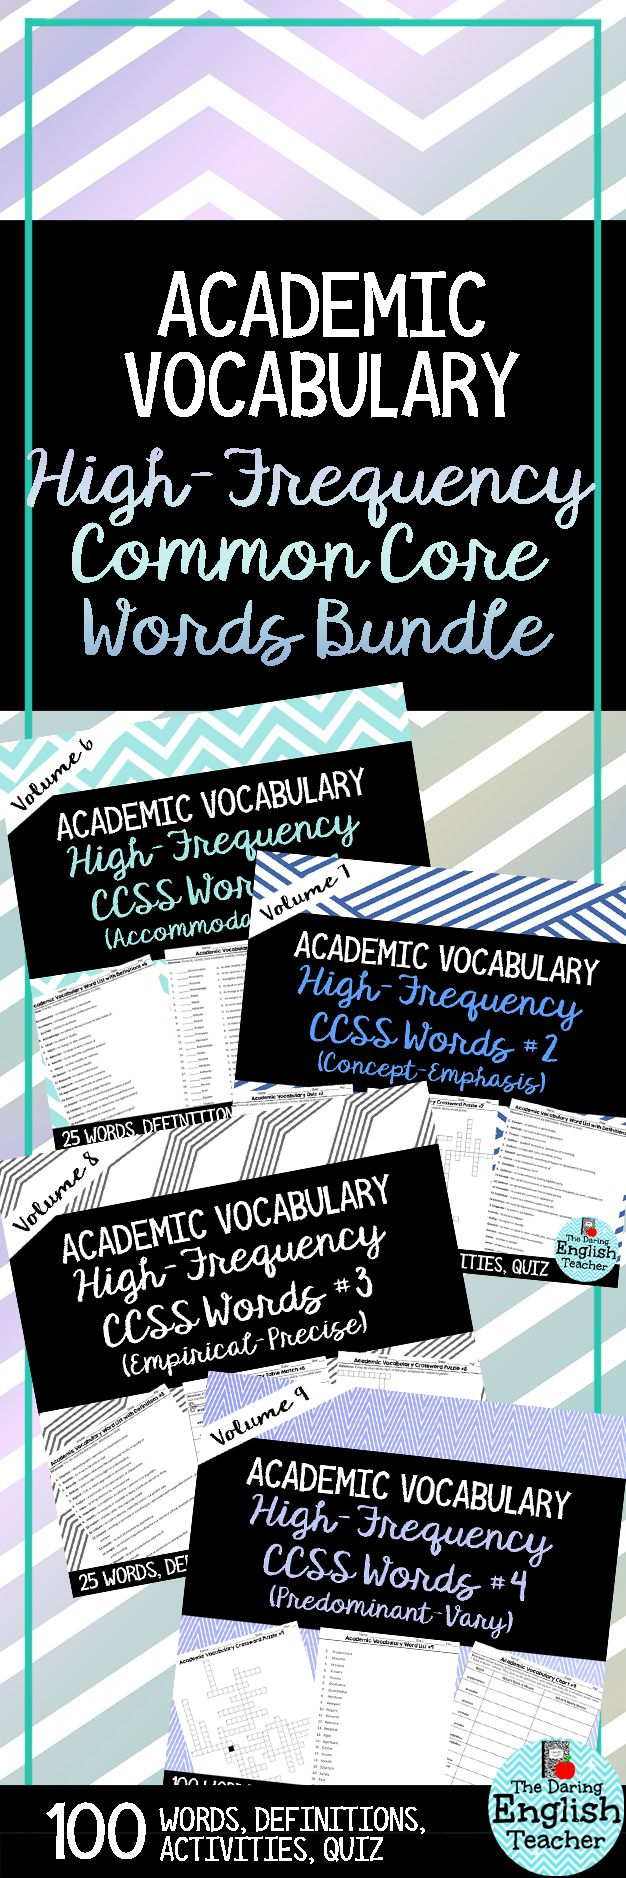 Teach high-frequency common core academic vocabulary words to your middle and high school English language arts students and help them improve their performance in class and on standardized tests.